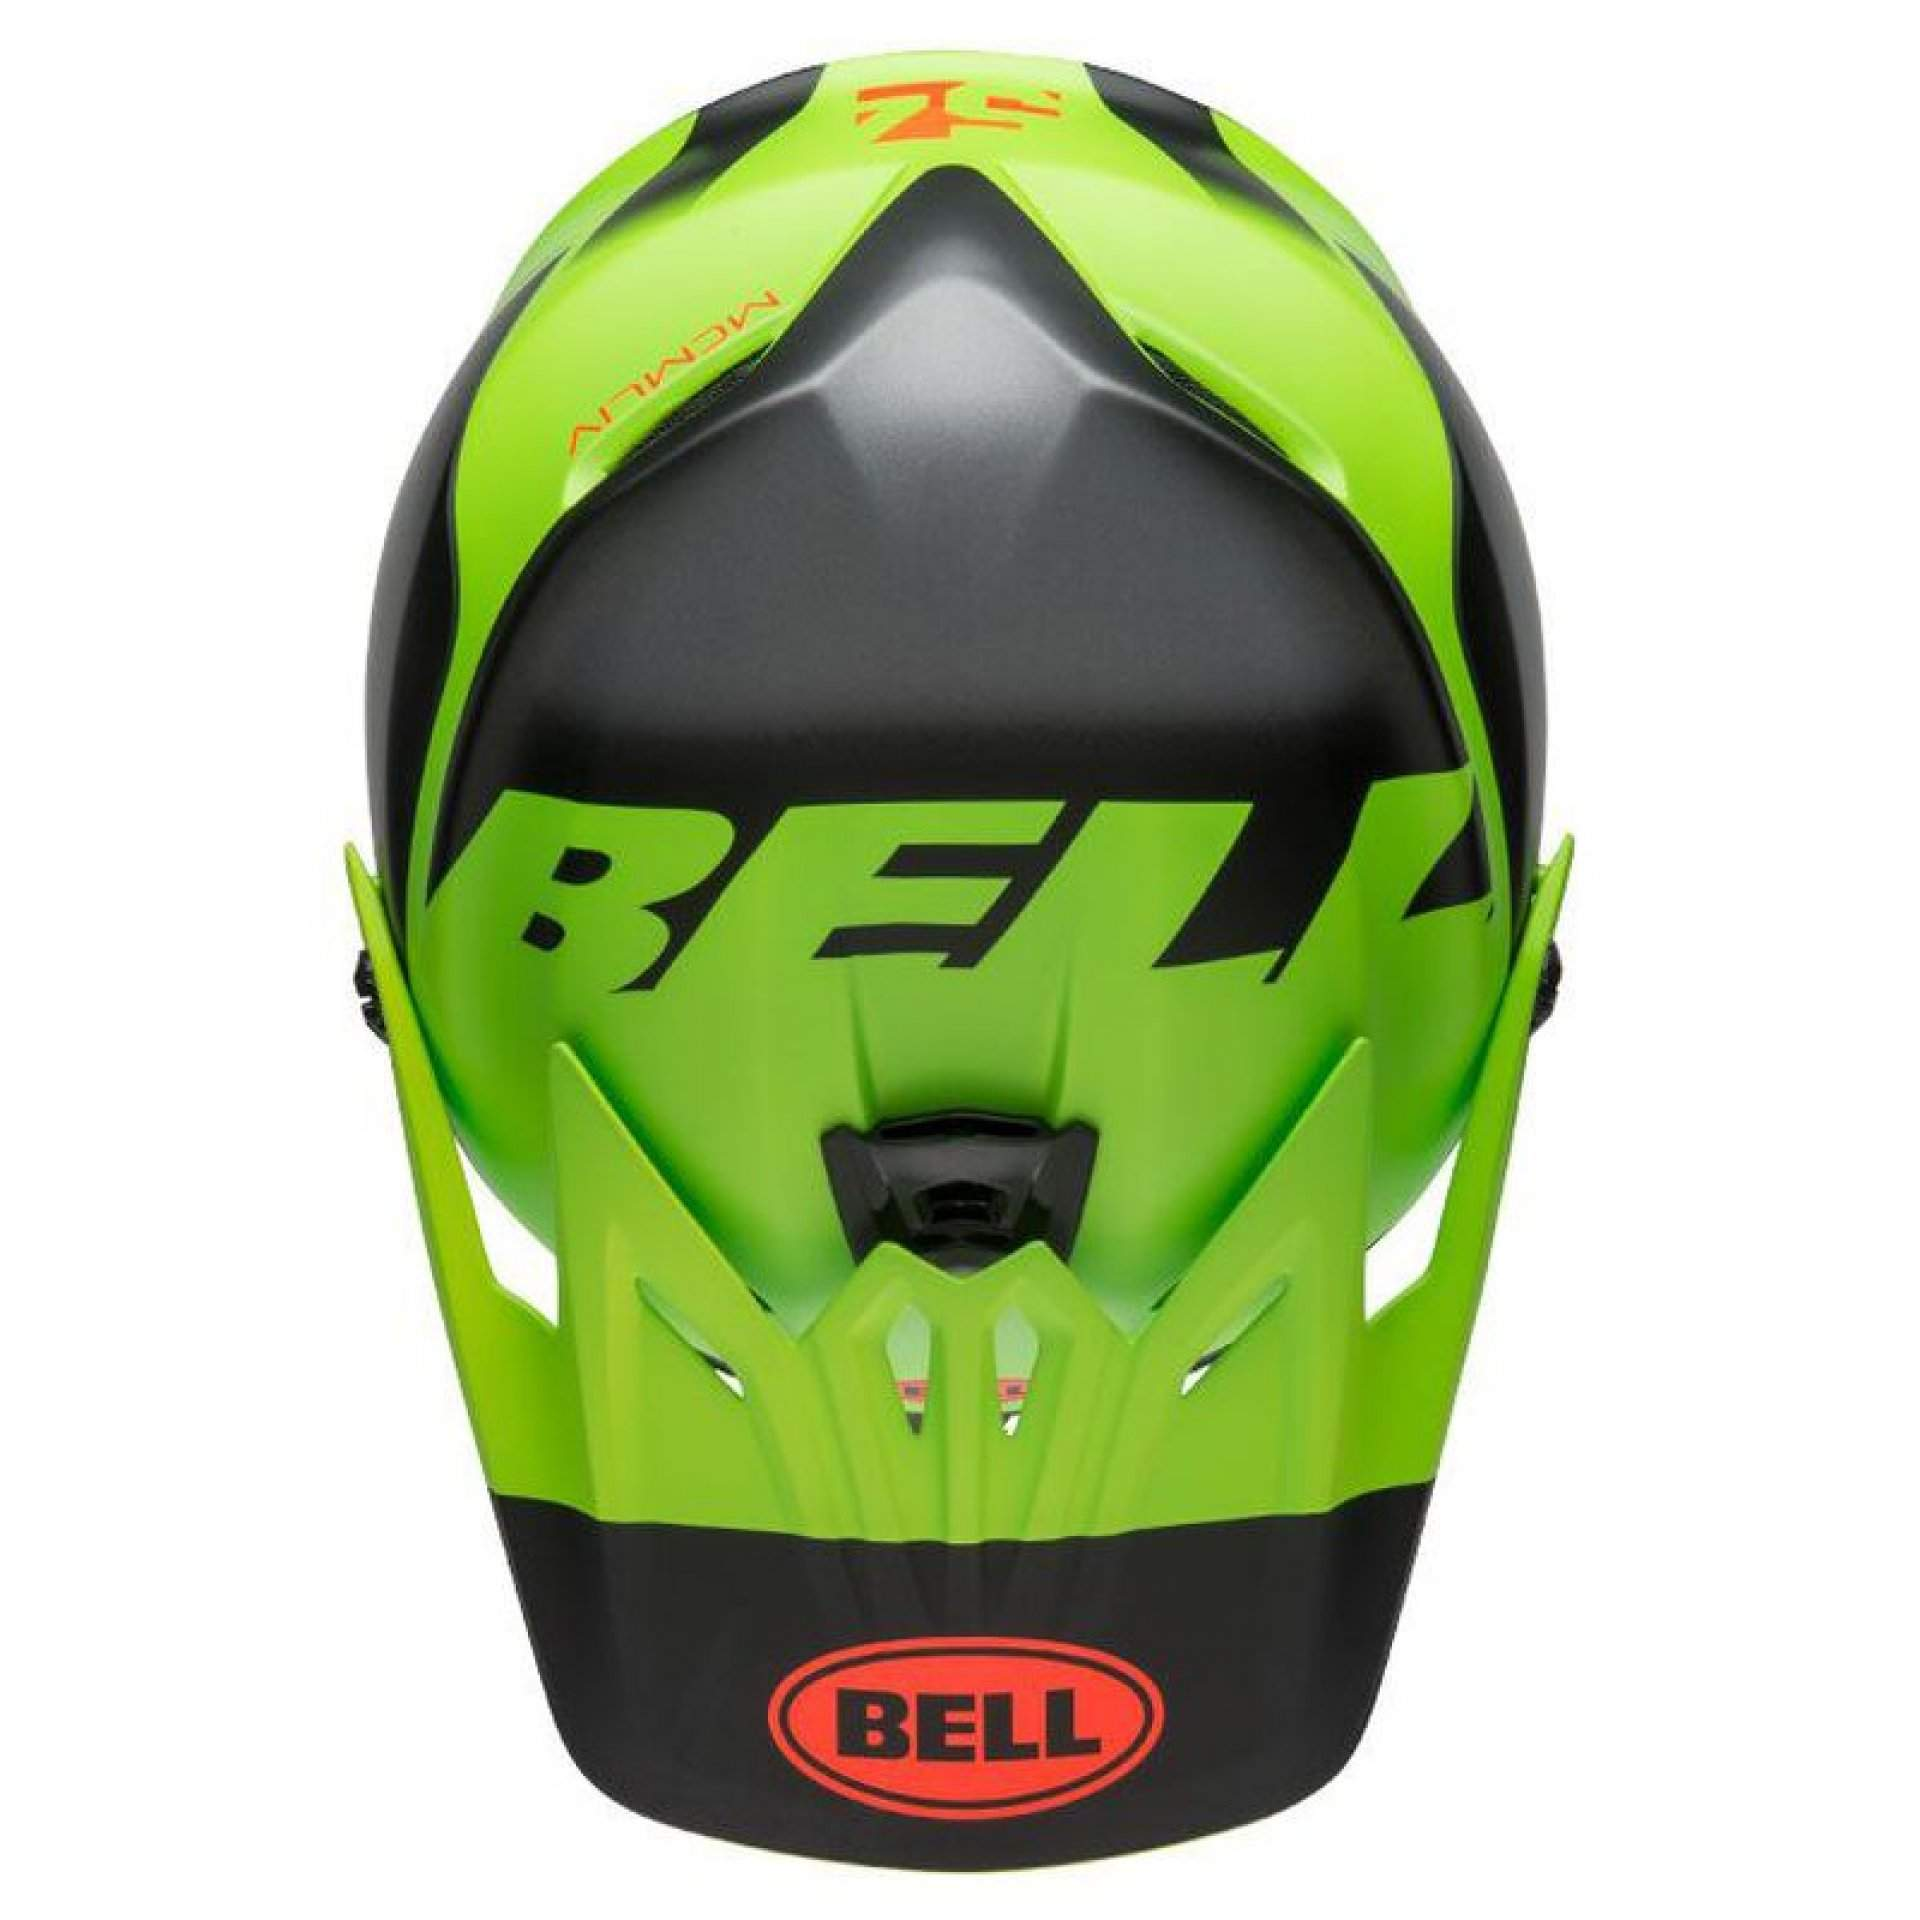 KASK ROWEROWY BELL FULL-9 FUSION MIPS MATTE GREEN|BLACK|CRIMSON 6